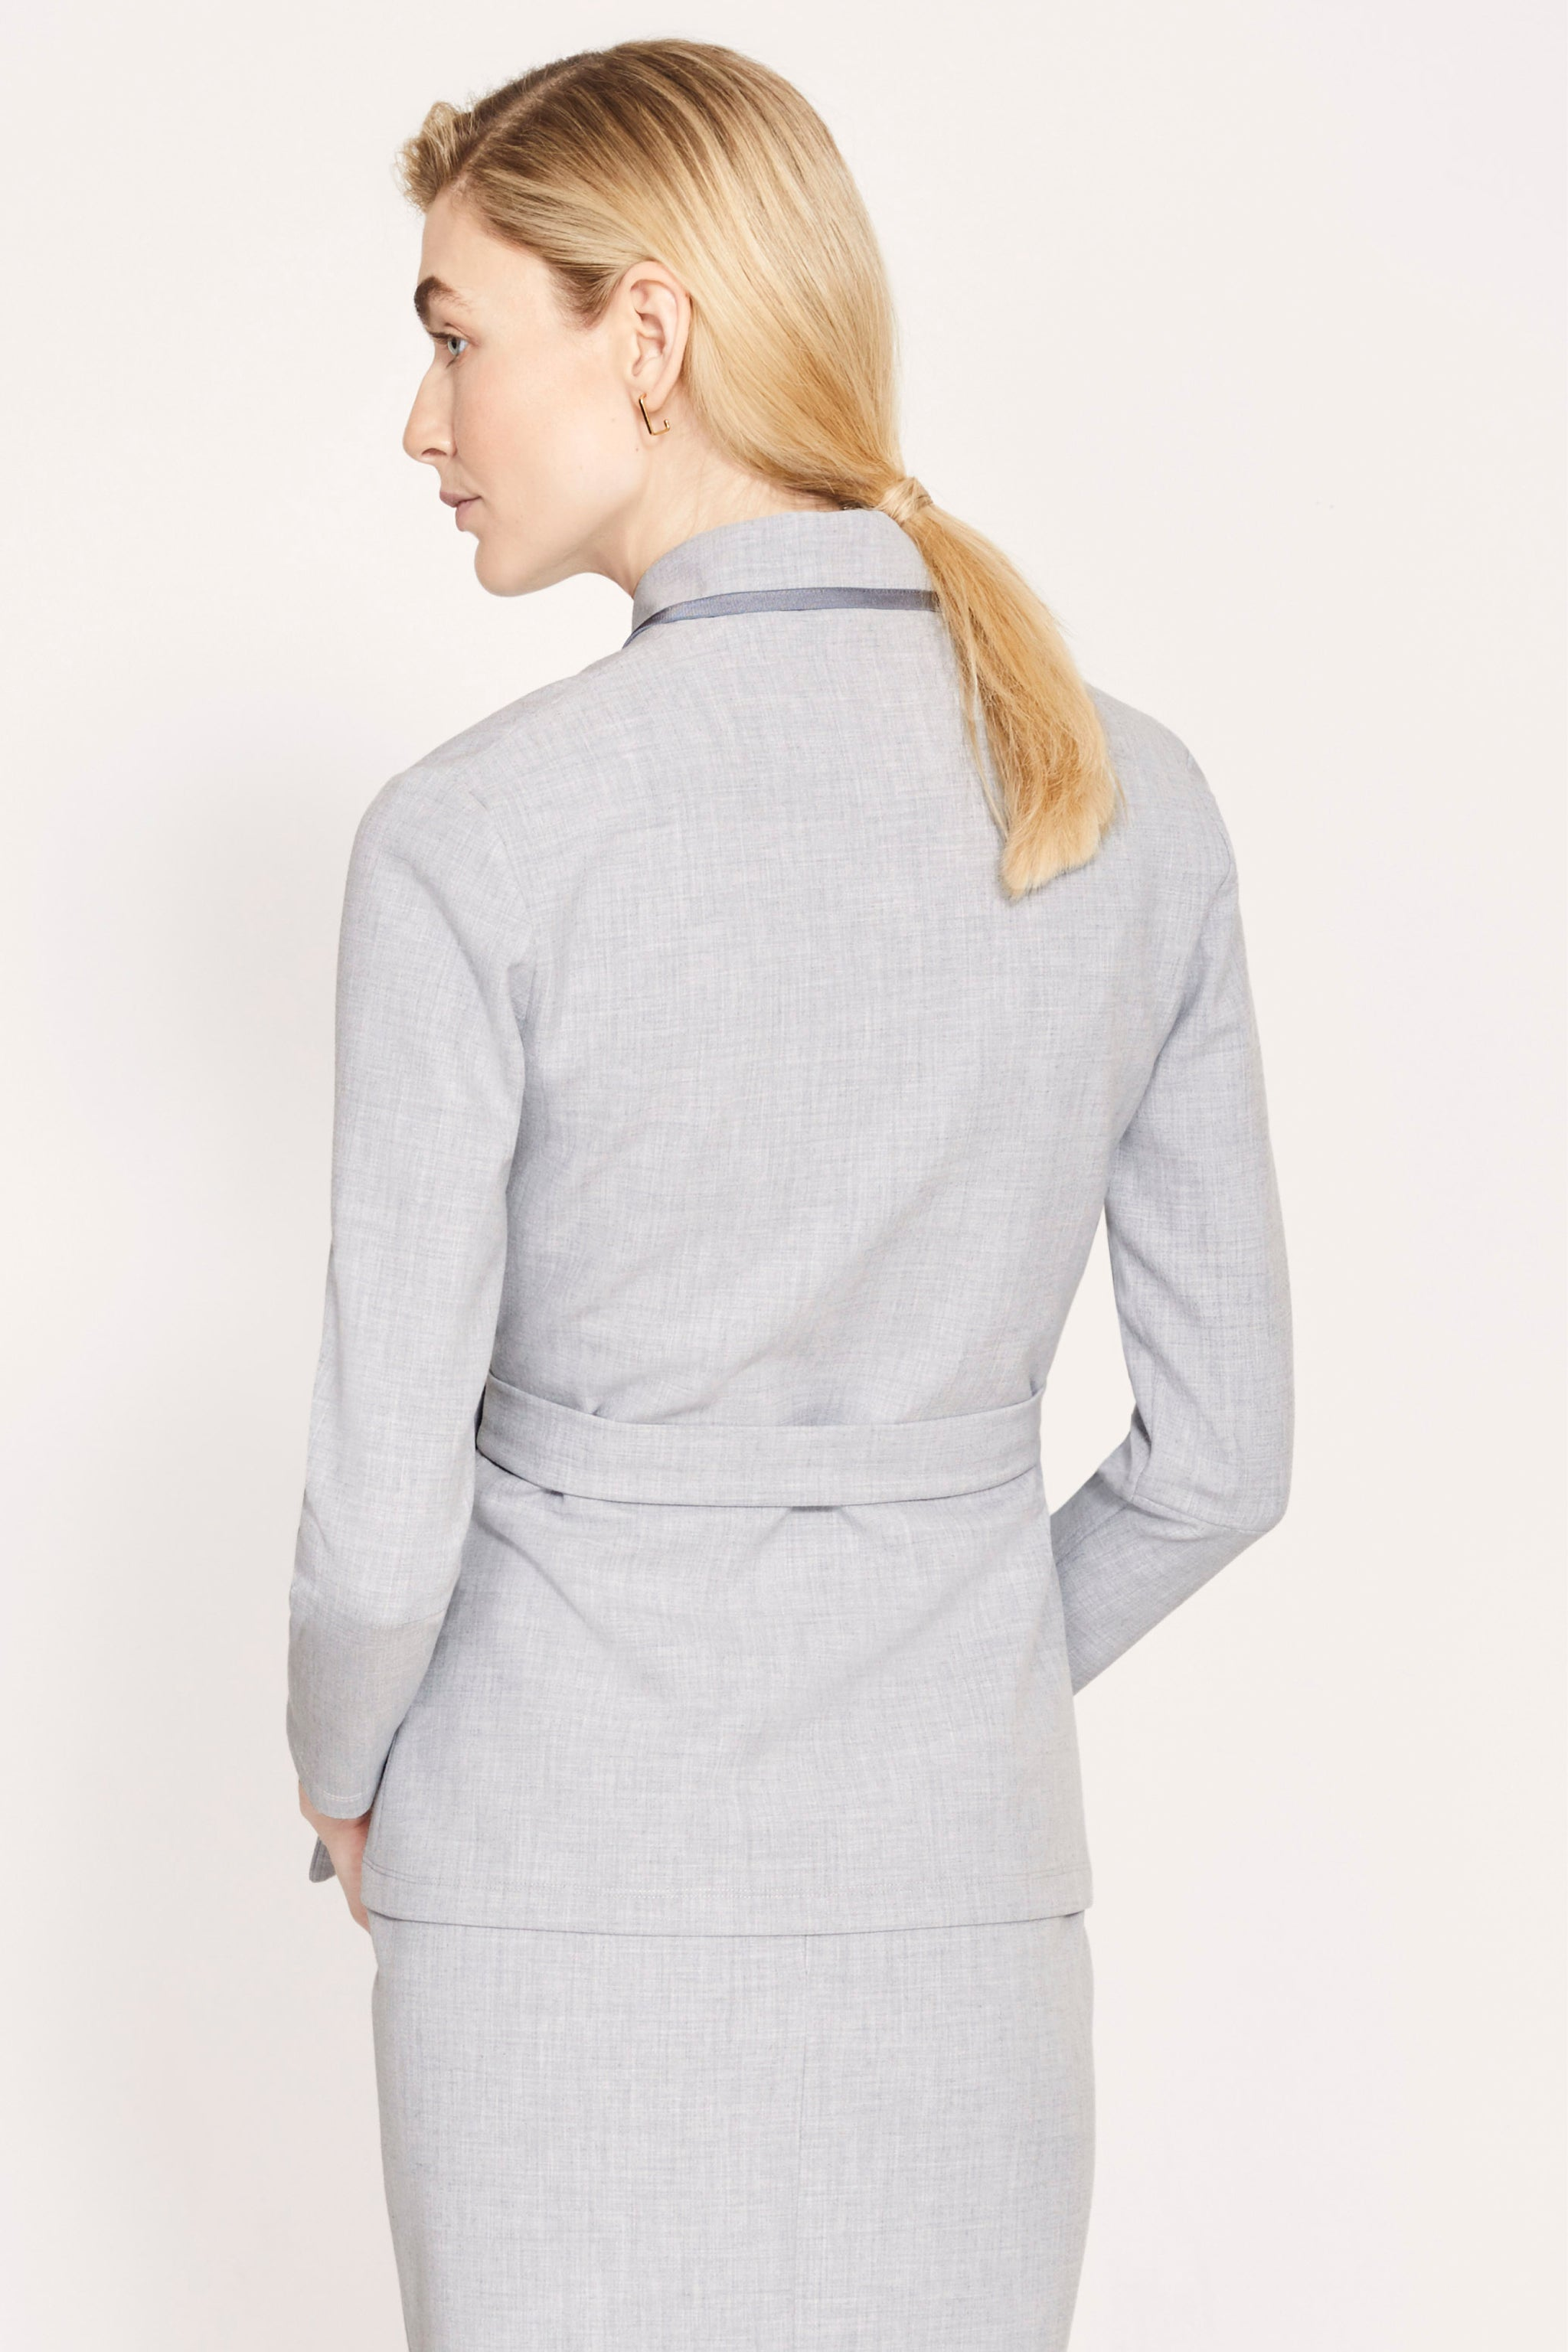 Plymouth Pale Grey Jacket